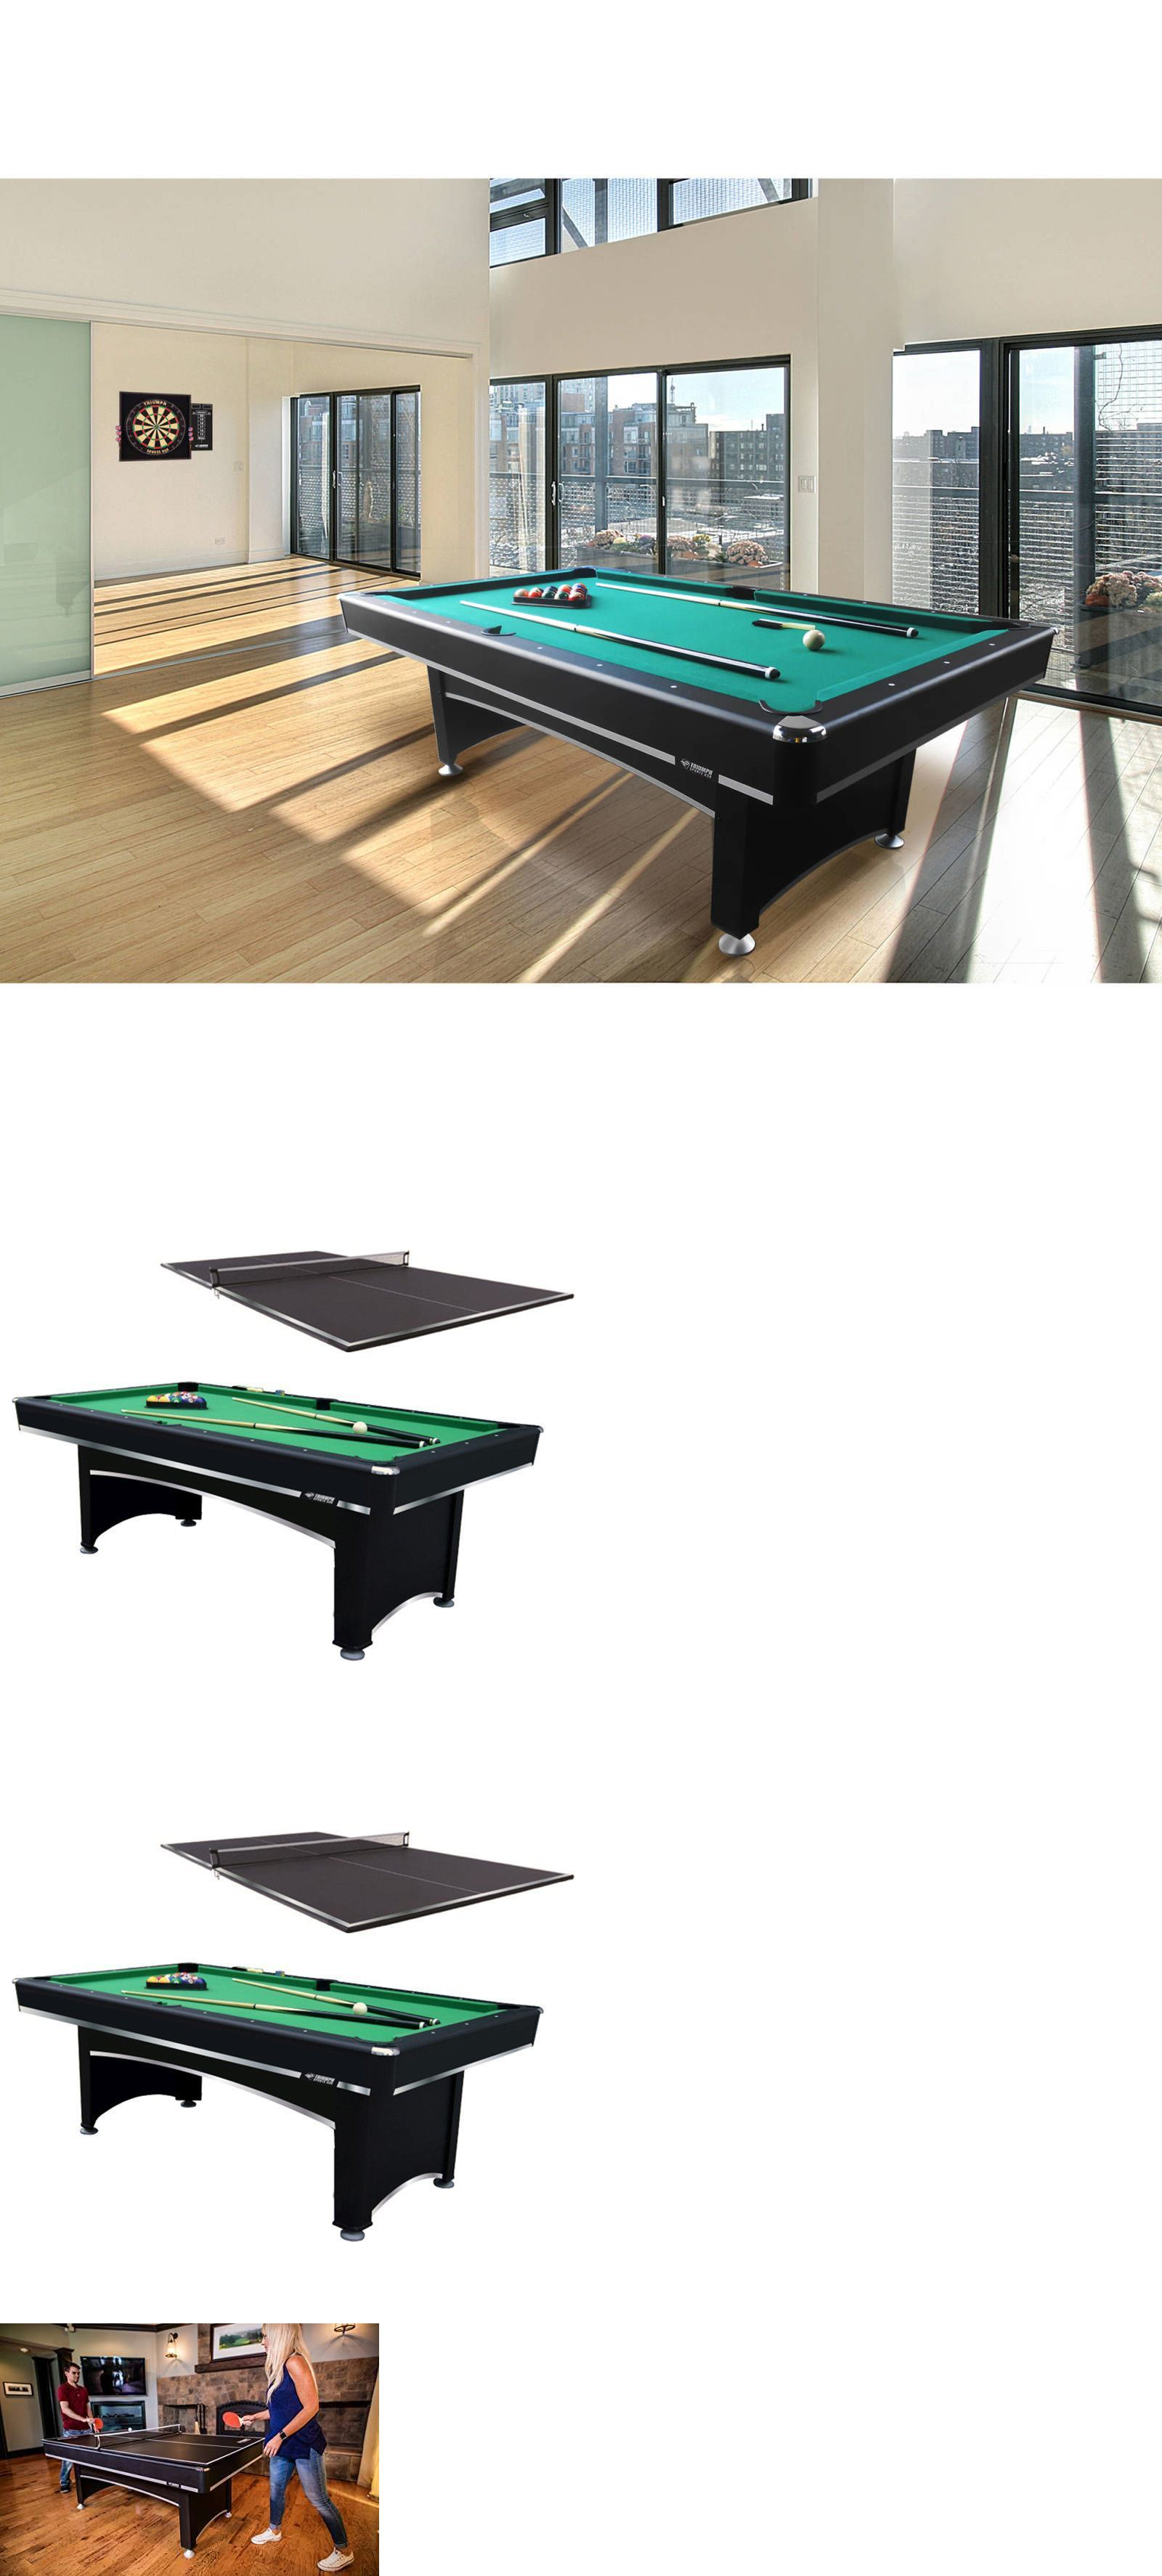 Tables 21213: 2 In 1 Billiard Pool Table With Ping Pong Table Tennis Top  Room